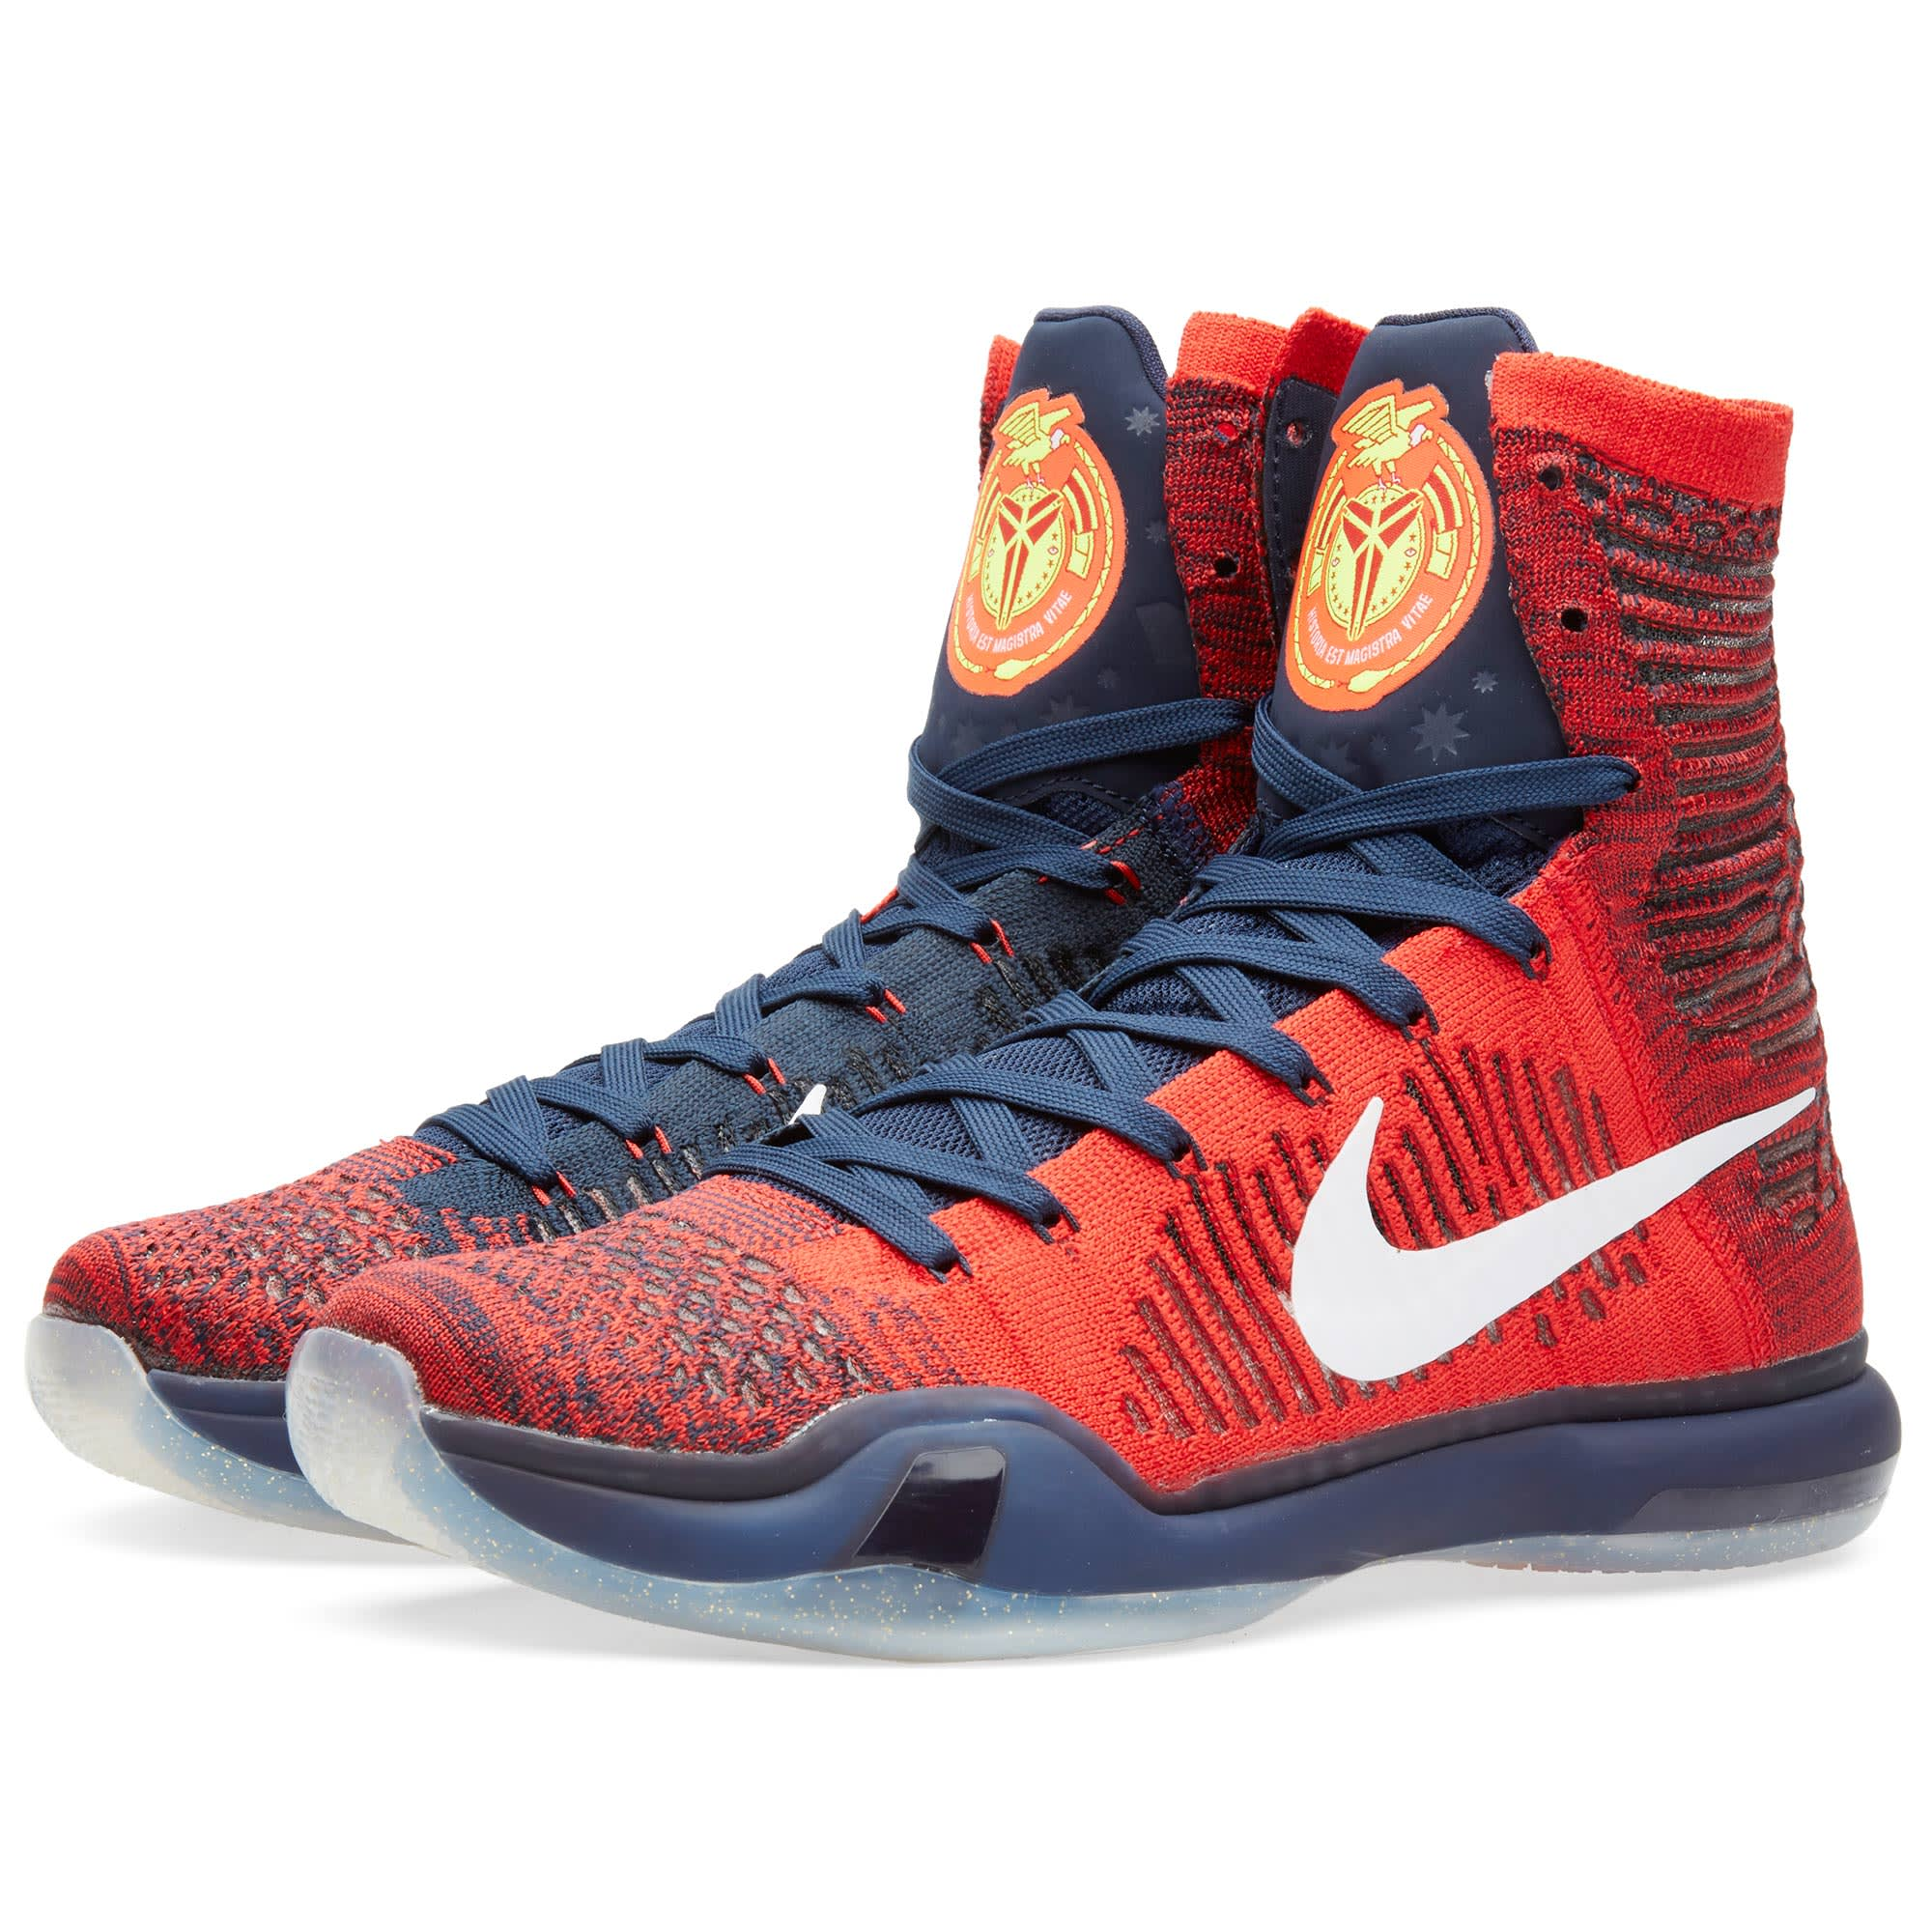 0241074039ce Nike Kobe X Elite 'American' University Red & White | END.